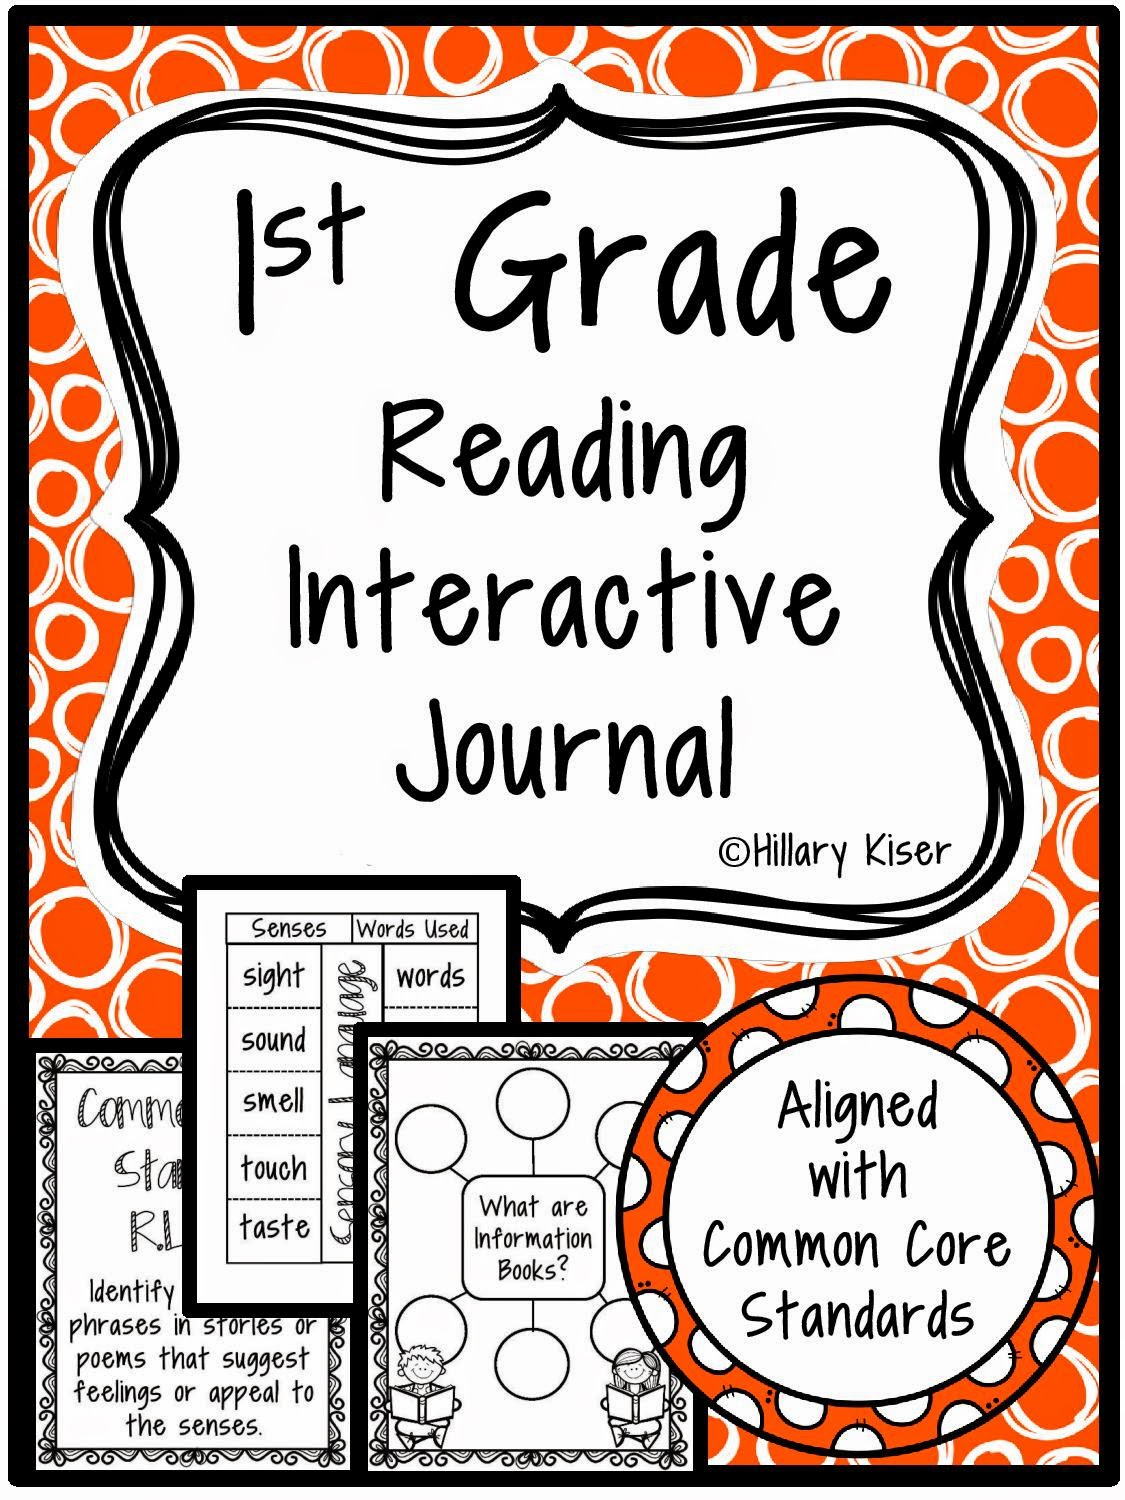 Worksheet 1st Grade Reading Level worksheet 1st grade level reading mikyu free adventures in teaching first interactive journal all levels well